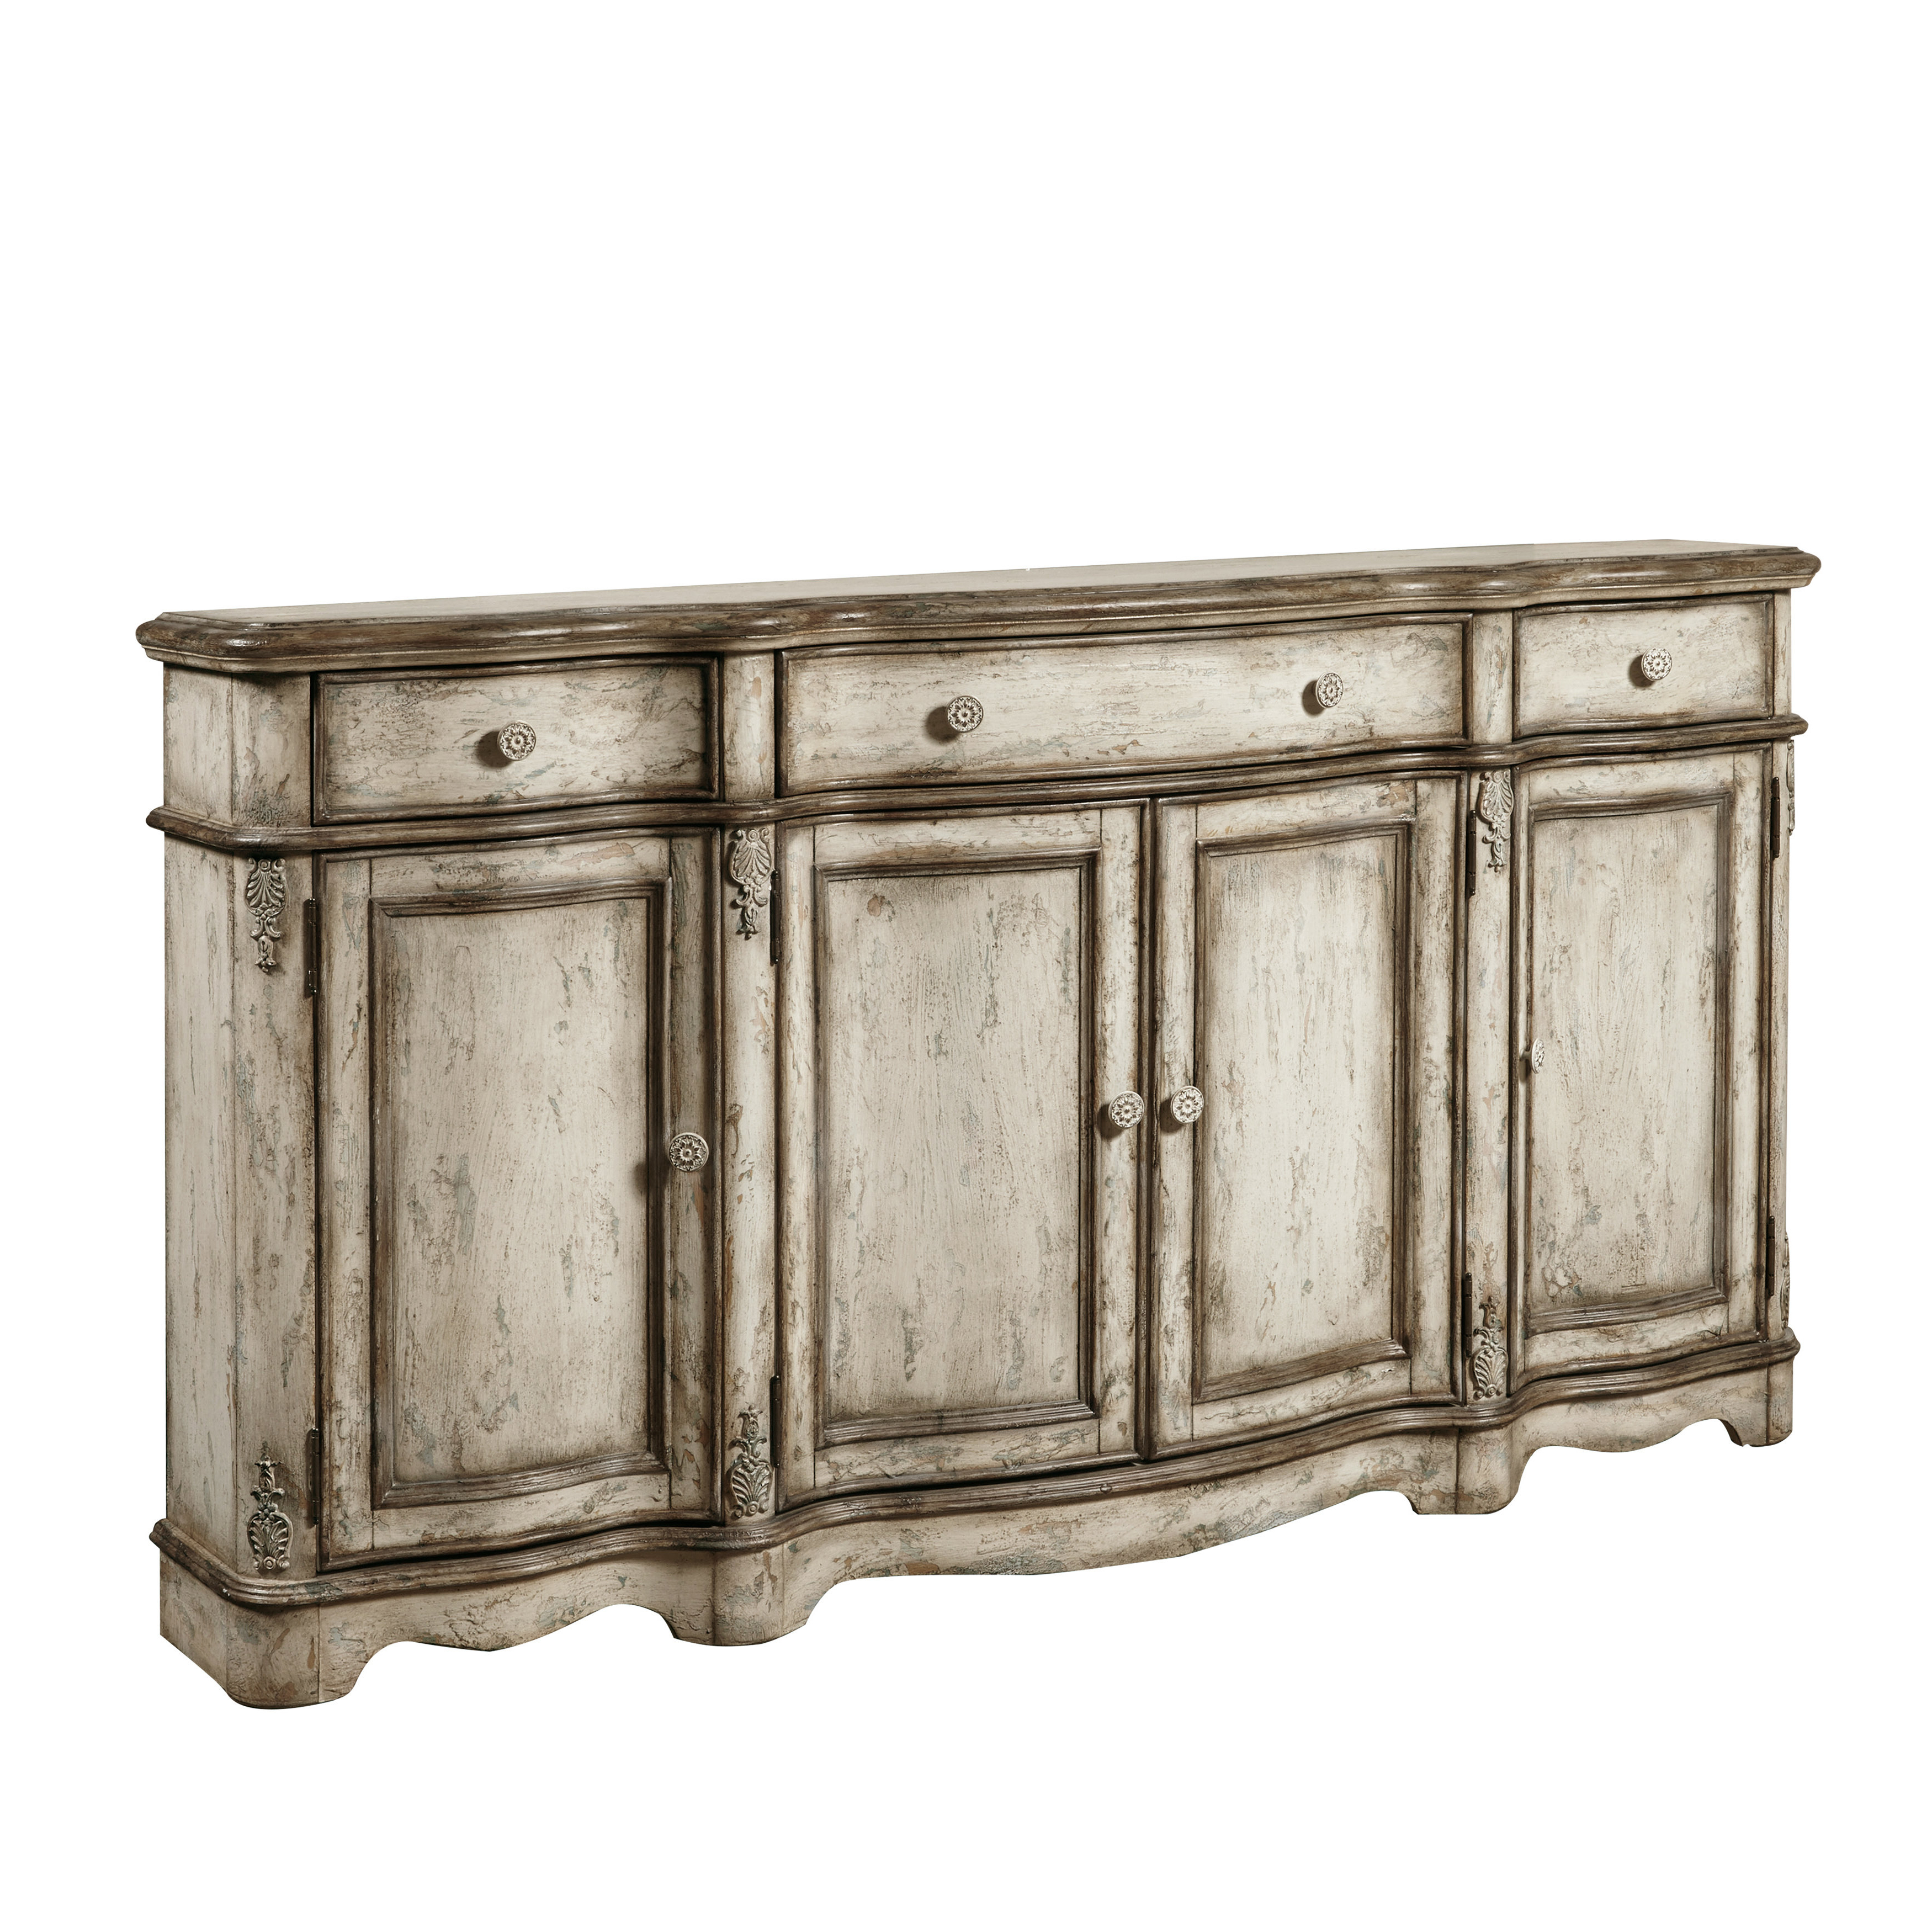 Seiling Sideboards Regarding Popular Farmhouse & Rustic Distressed Finish Sideboards & Buffets (View 20 of 20)